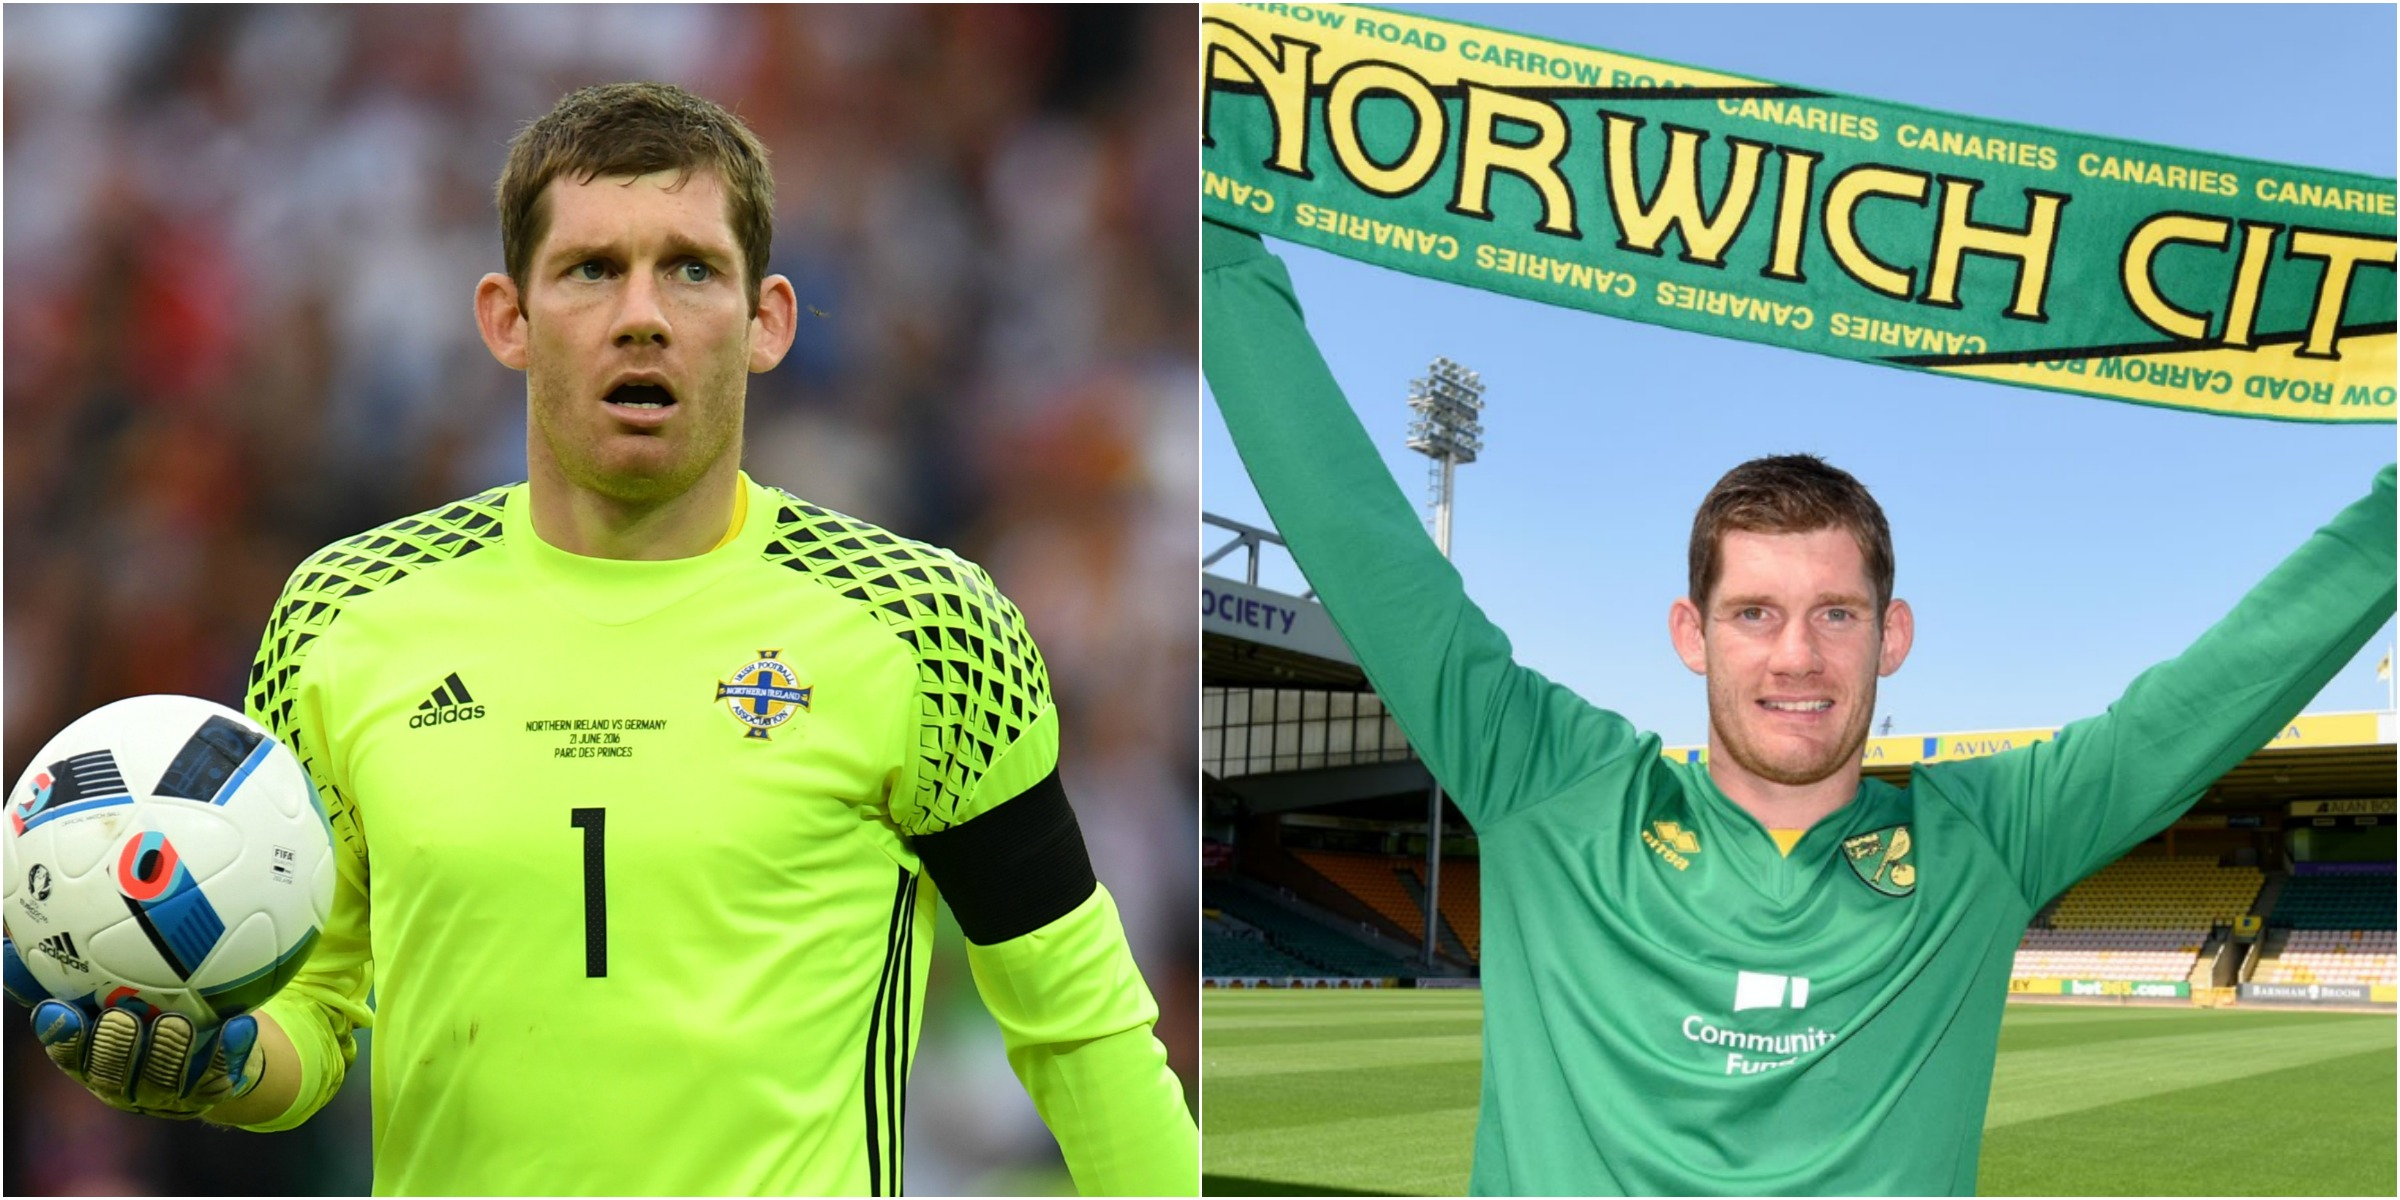 Northern Ireland goalkeeper Michael McGovern signs for Norwich